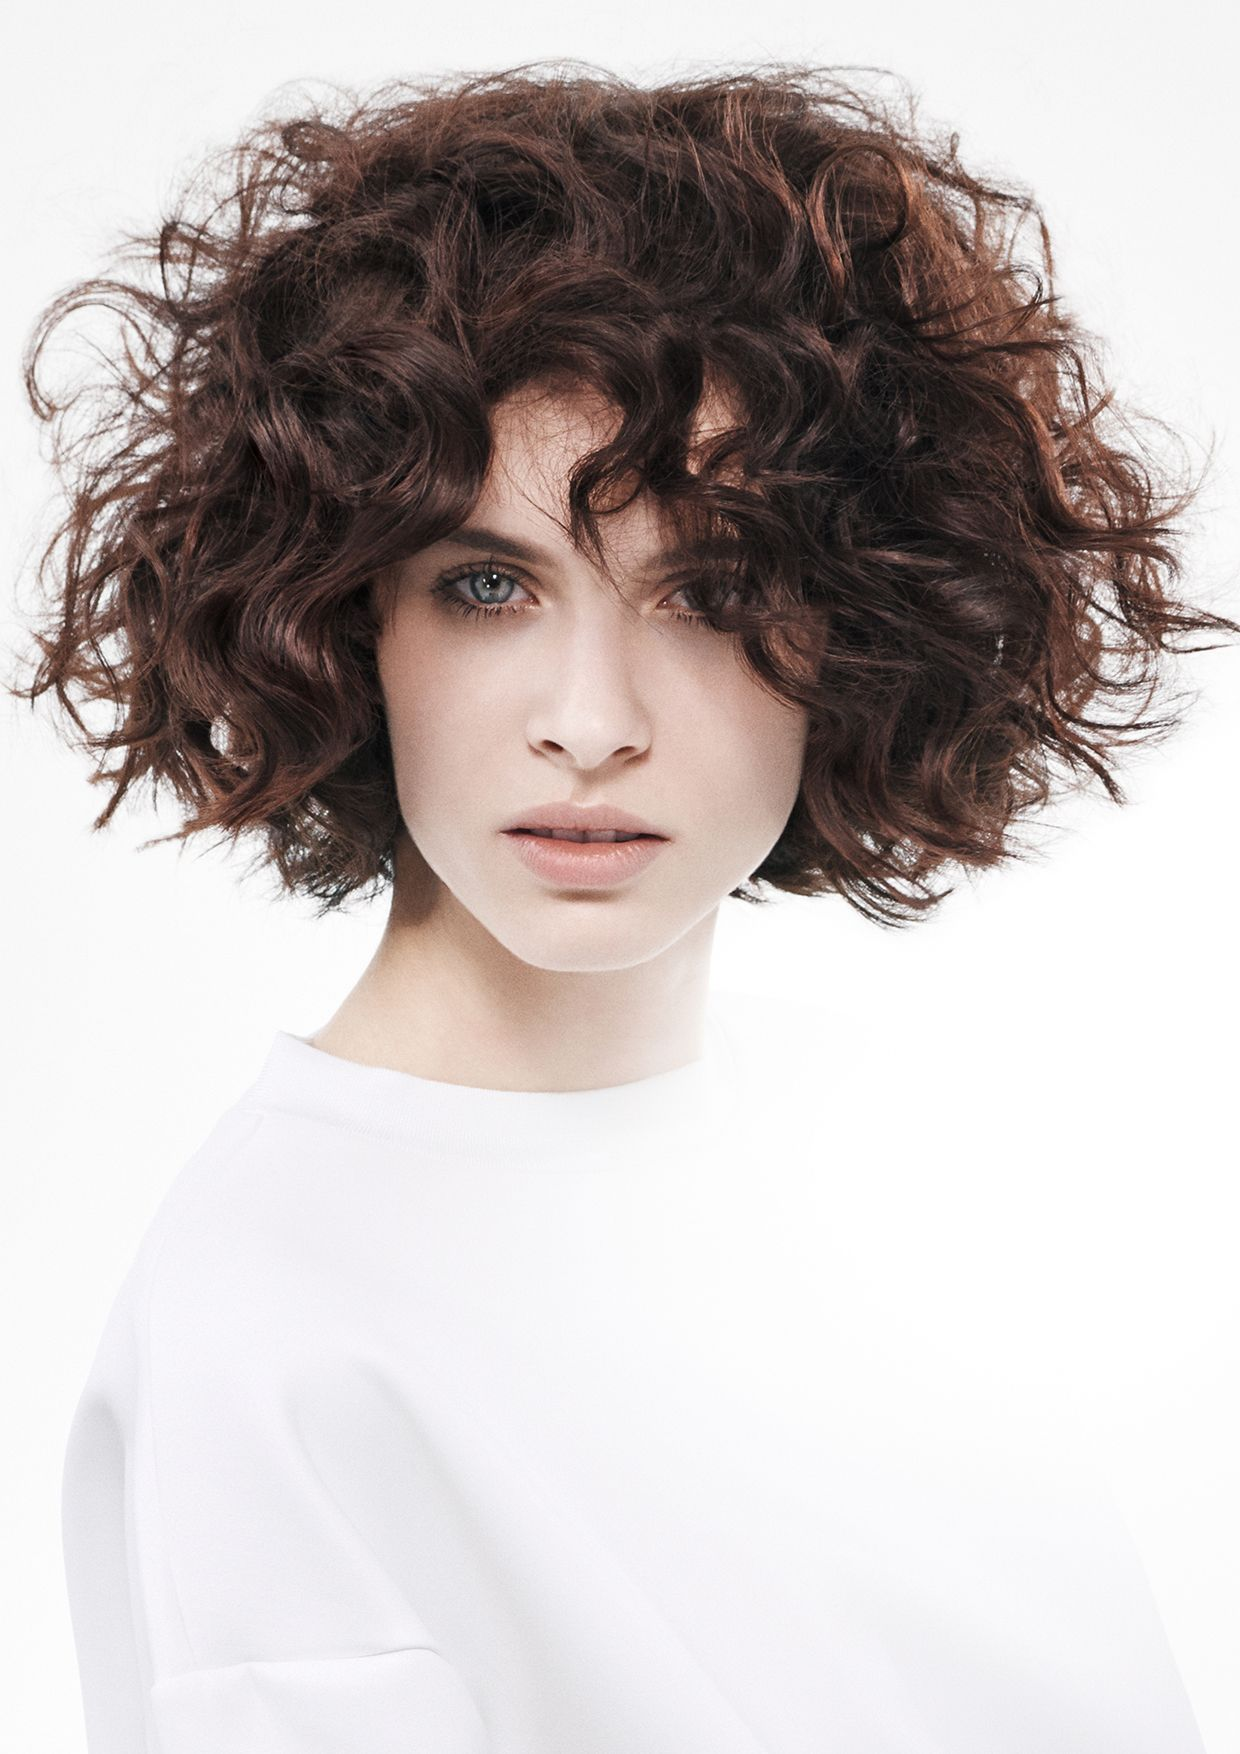 Style De Coiffure Femme Cheveux Mi-long Sassoon Academy Radiant Fw2015 Short Hair Cut